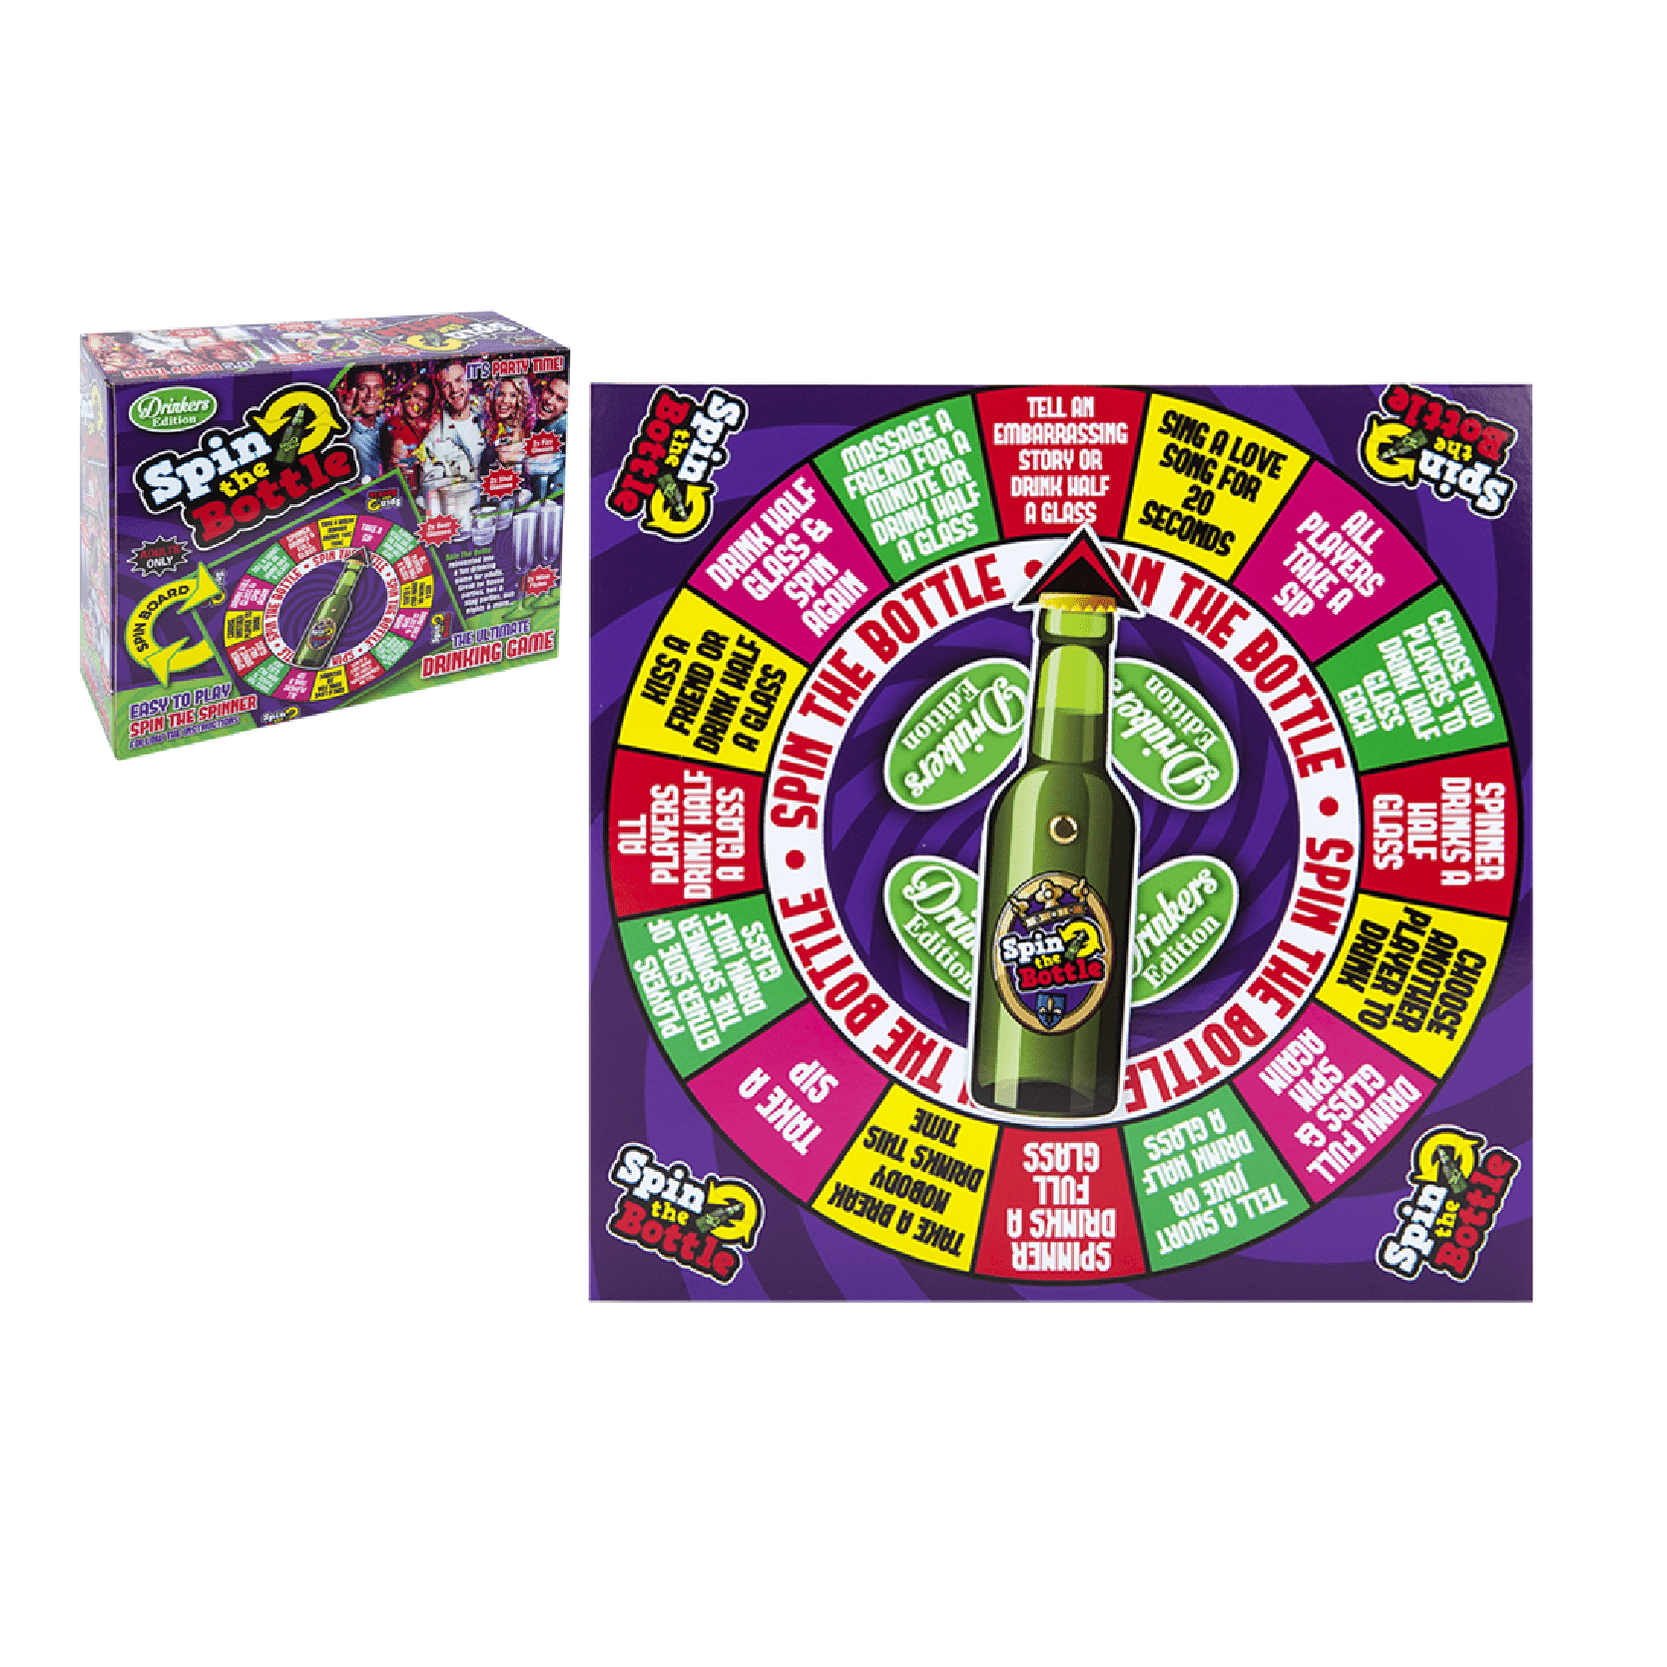 Spin The Bottle Game - Drinkers Edition (18+) - only5pounds.com